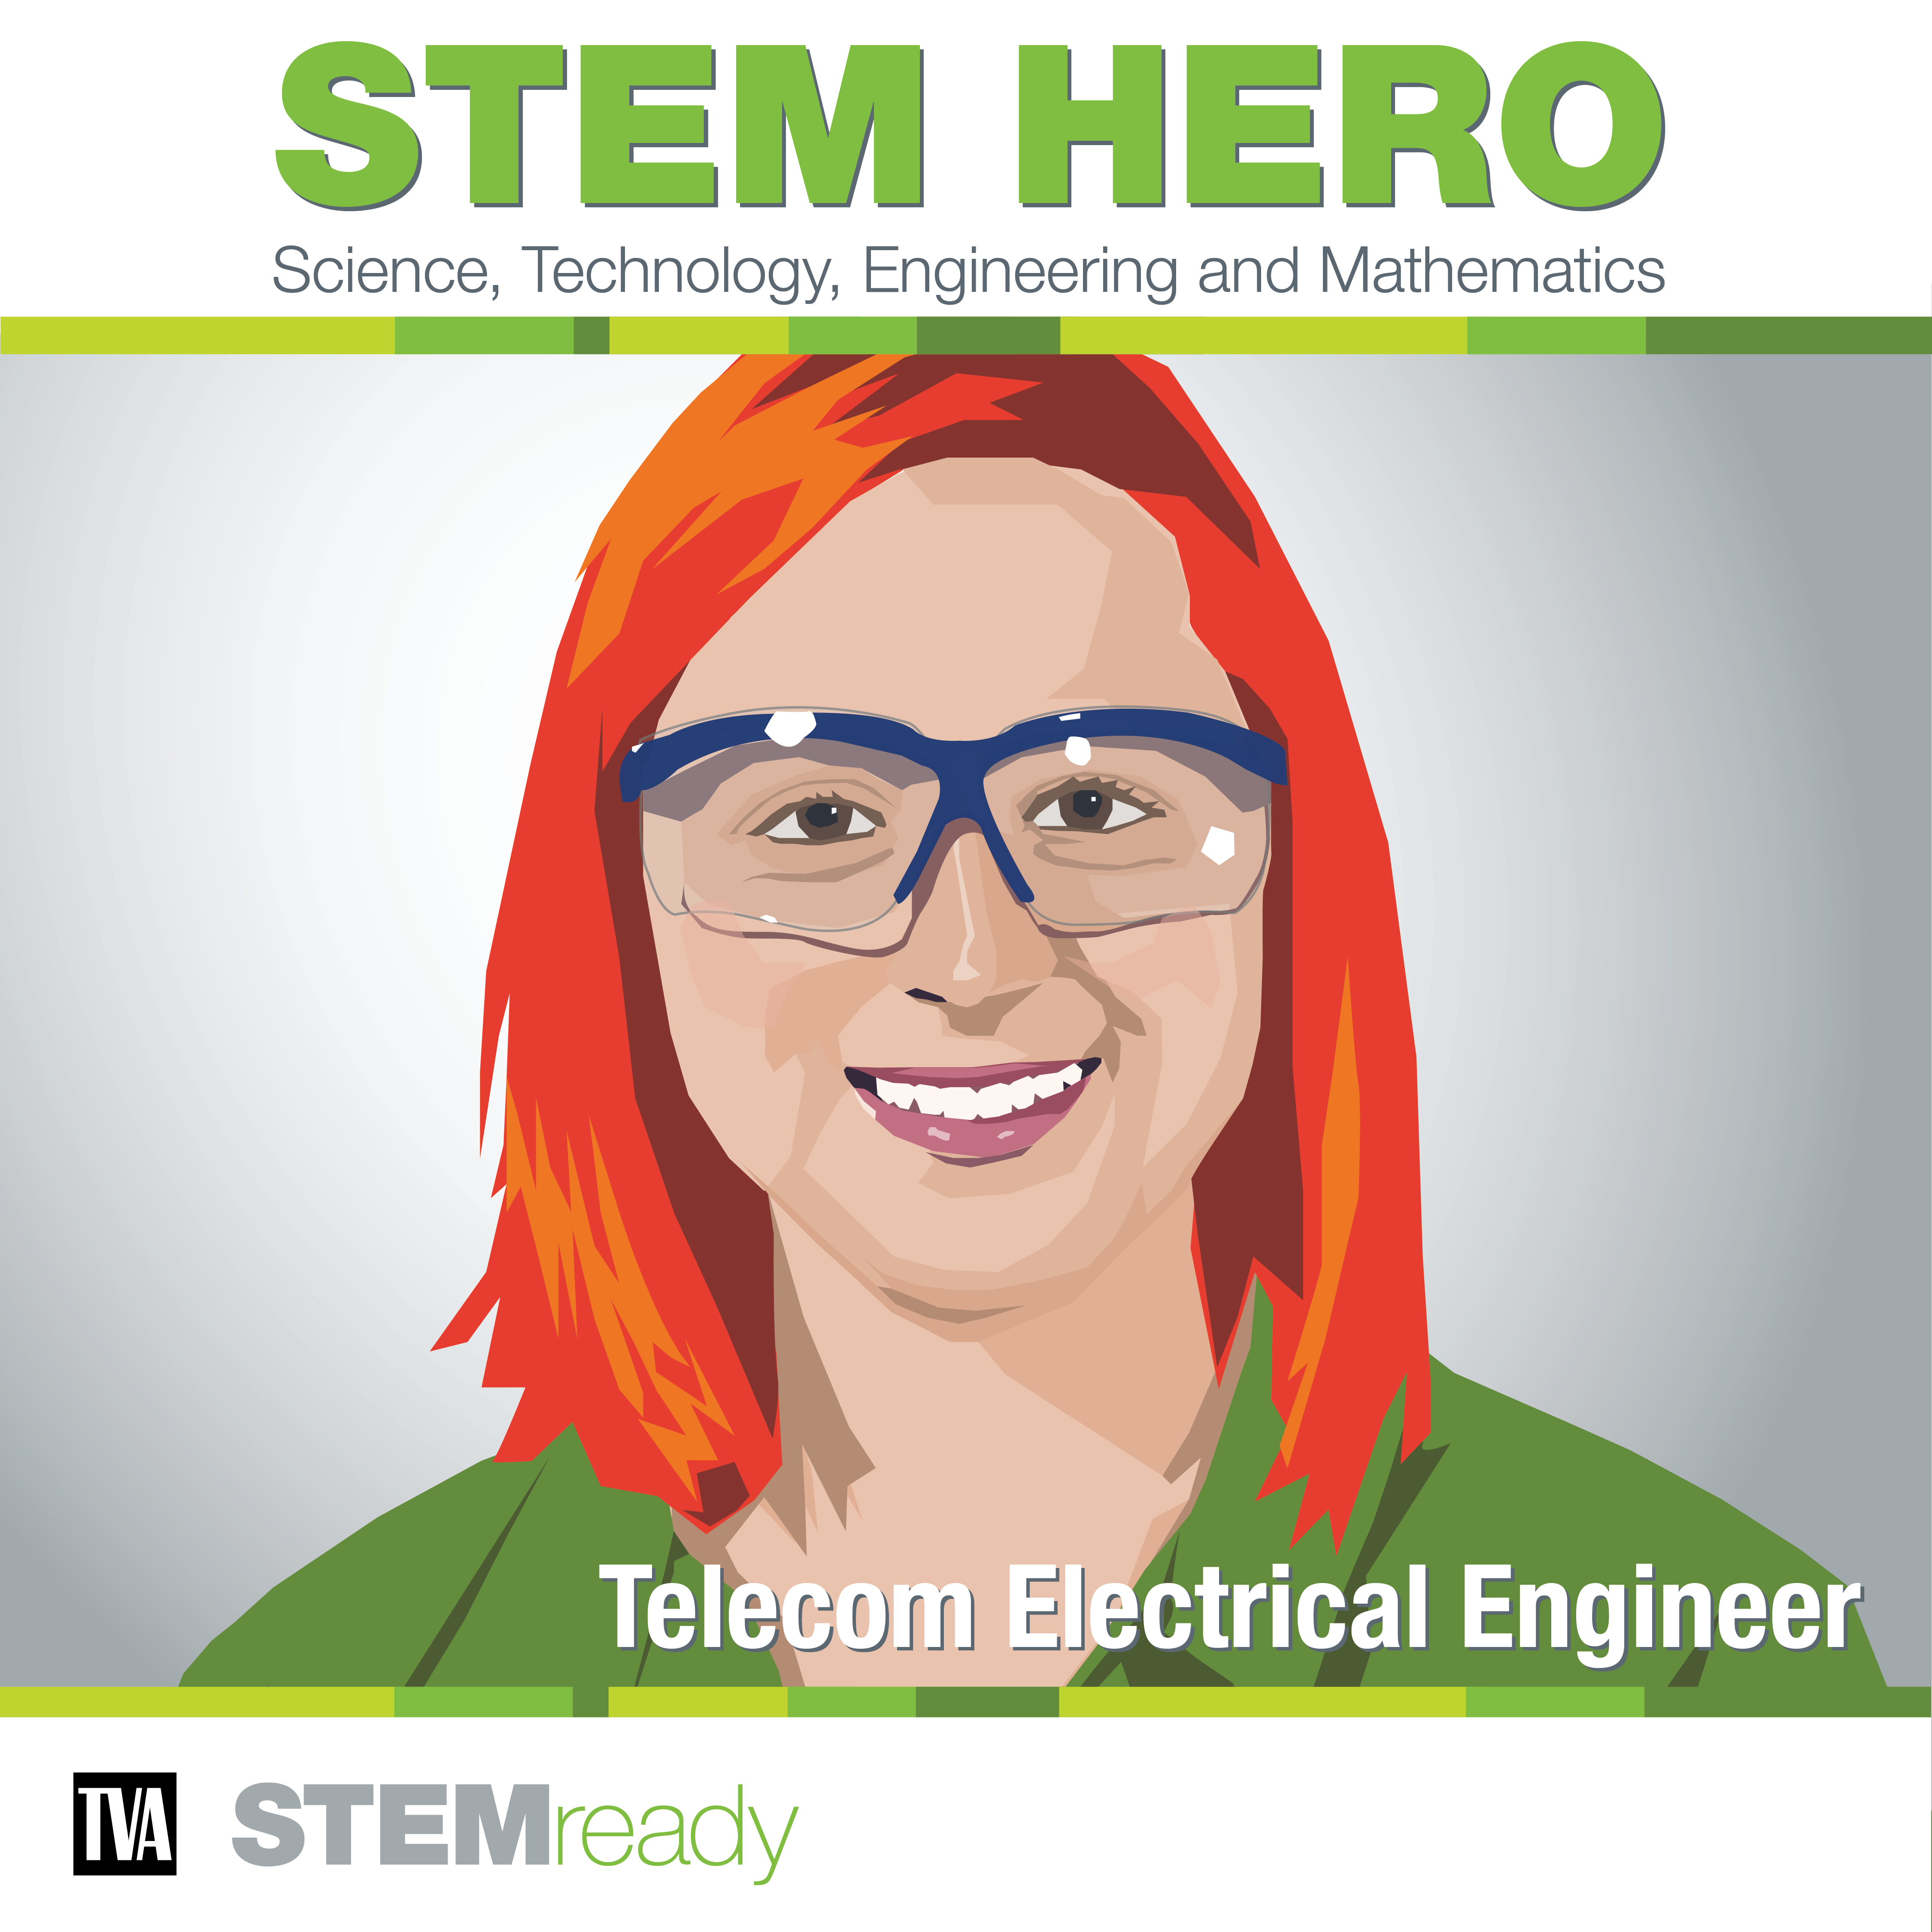 20-3239-stem-hero-posters-campaign-ii_telecomelectricalengineer_social_instagram